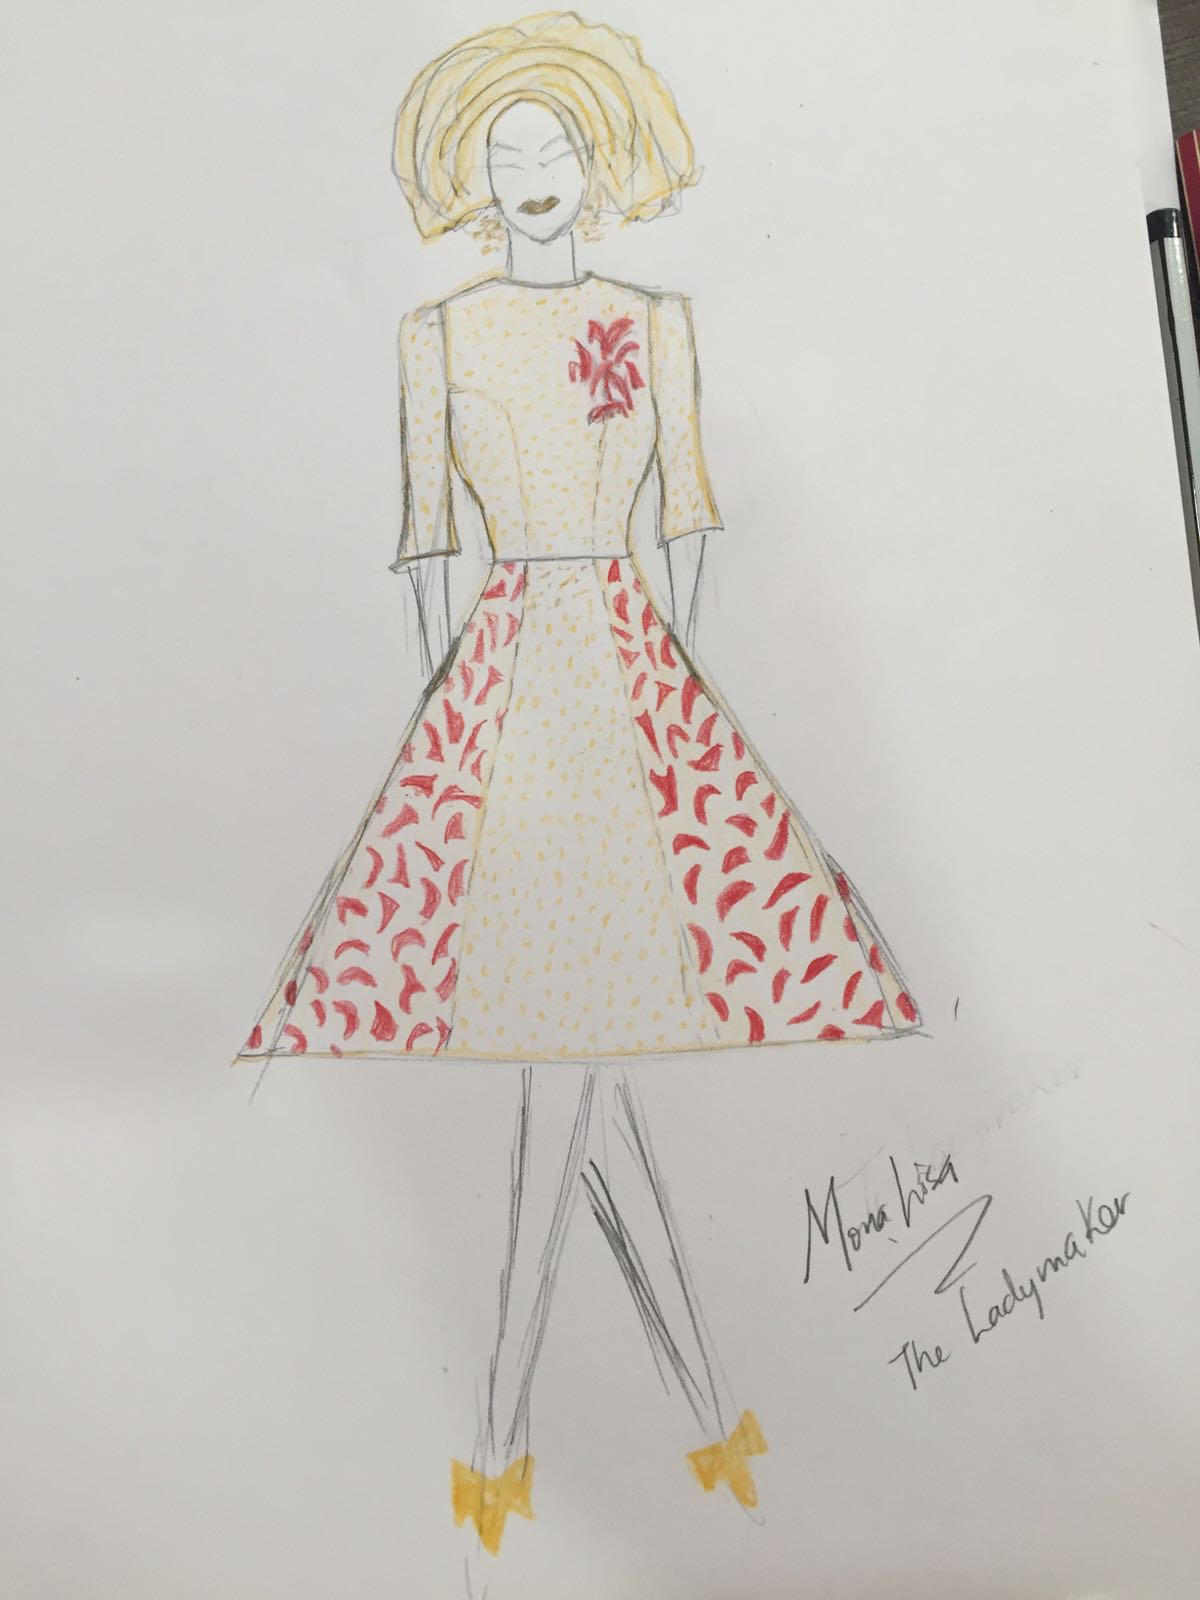 Trad-Inspiration: Monalisa Chinda's Outfit from Sketch to Reality.